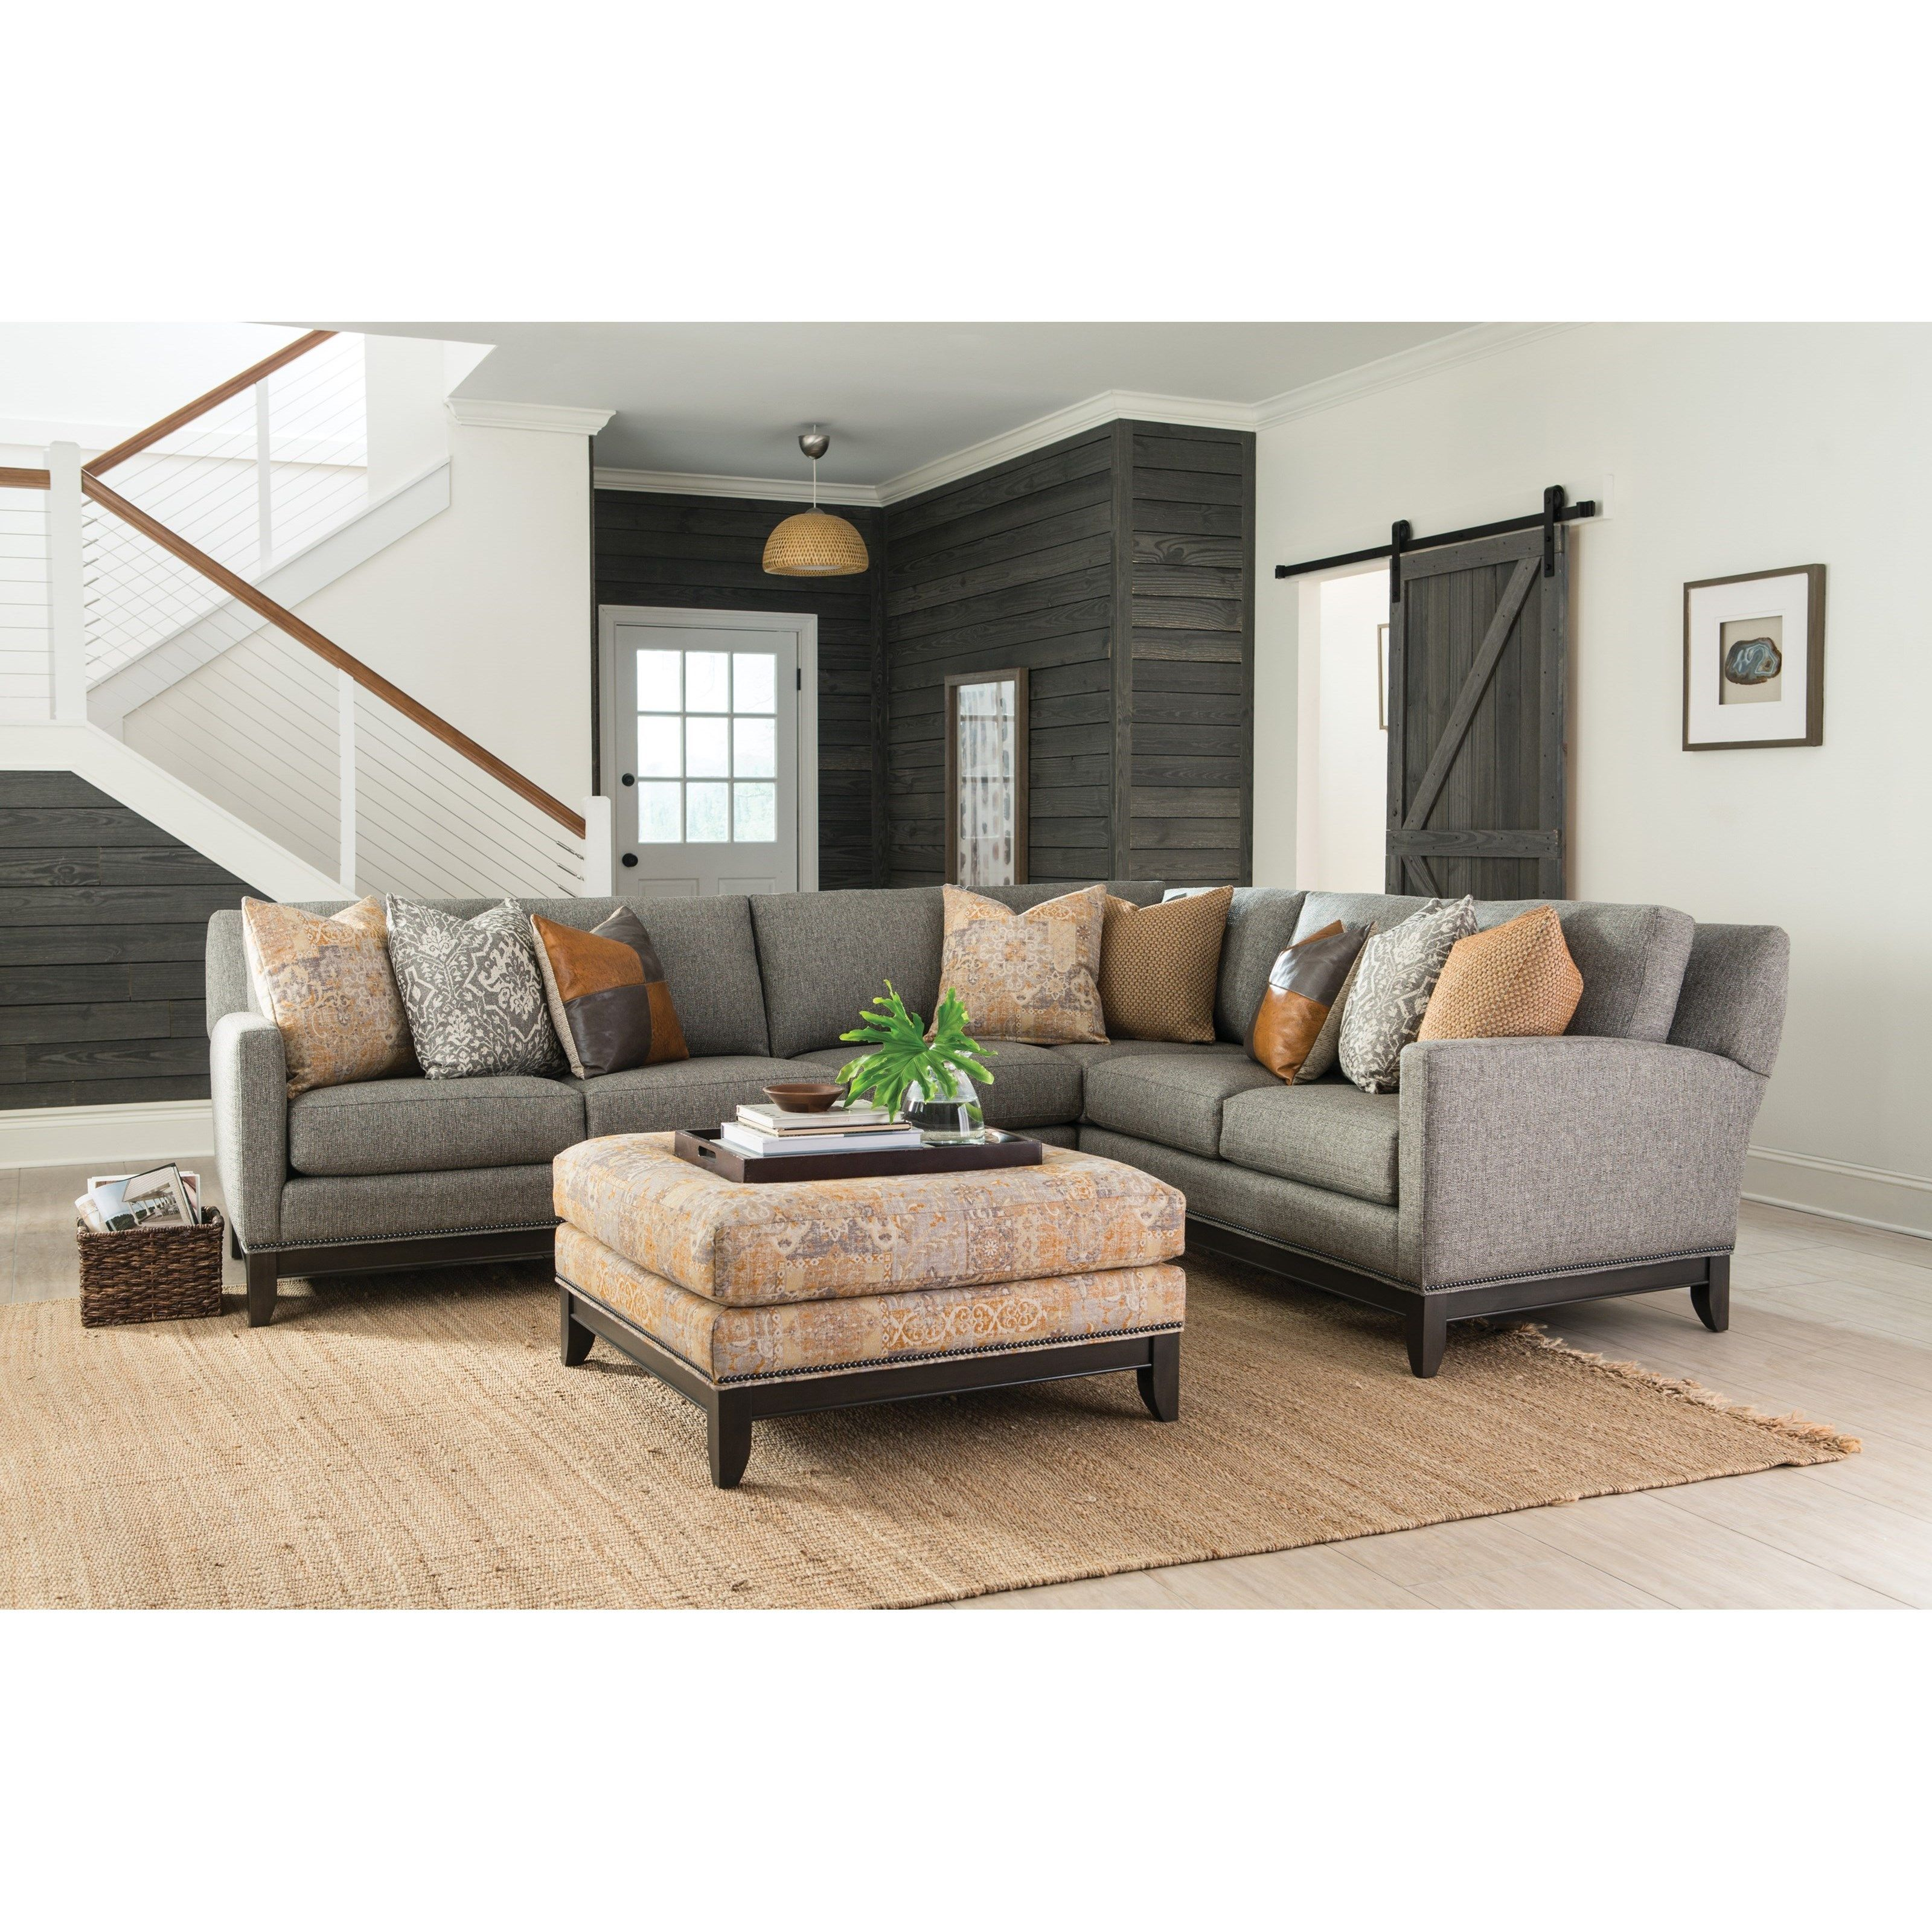 238 Sectional Sofa By Smith Brothers Transitional Sectional Sofas Smith Brothers Furniture Furniture